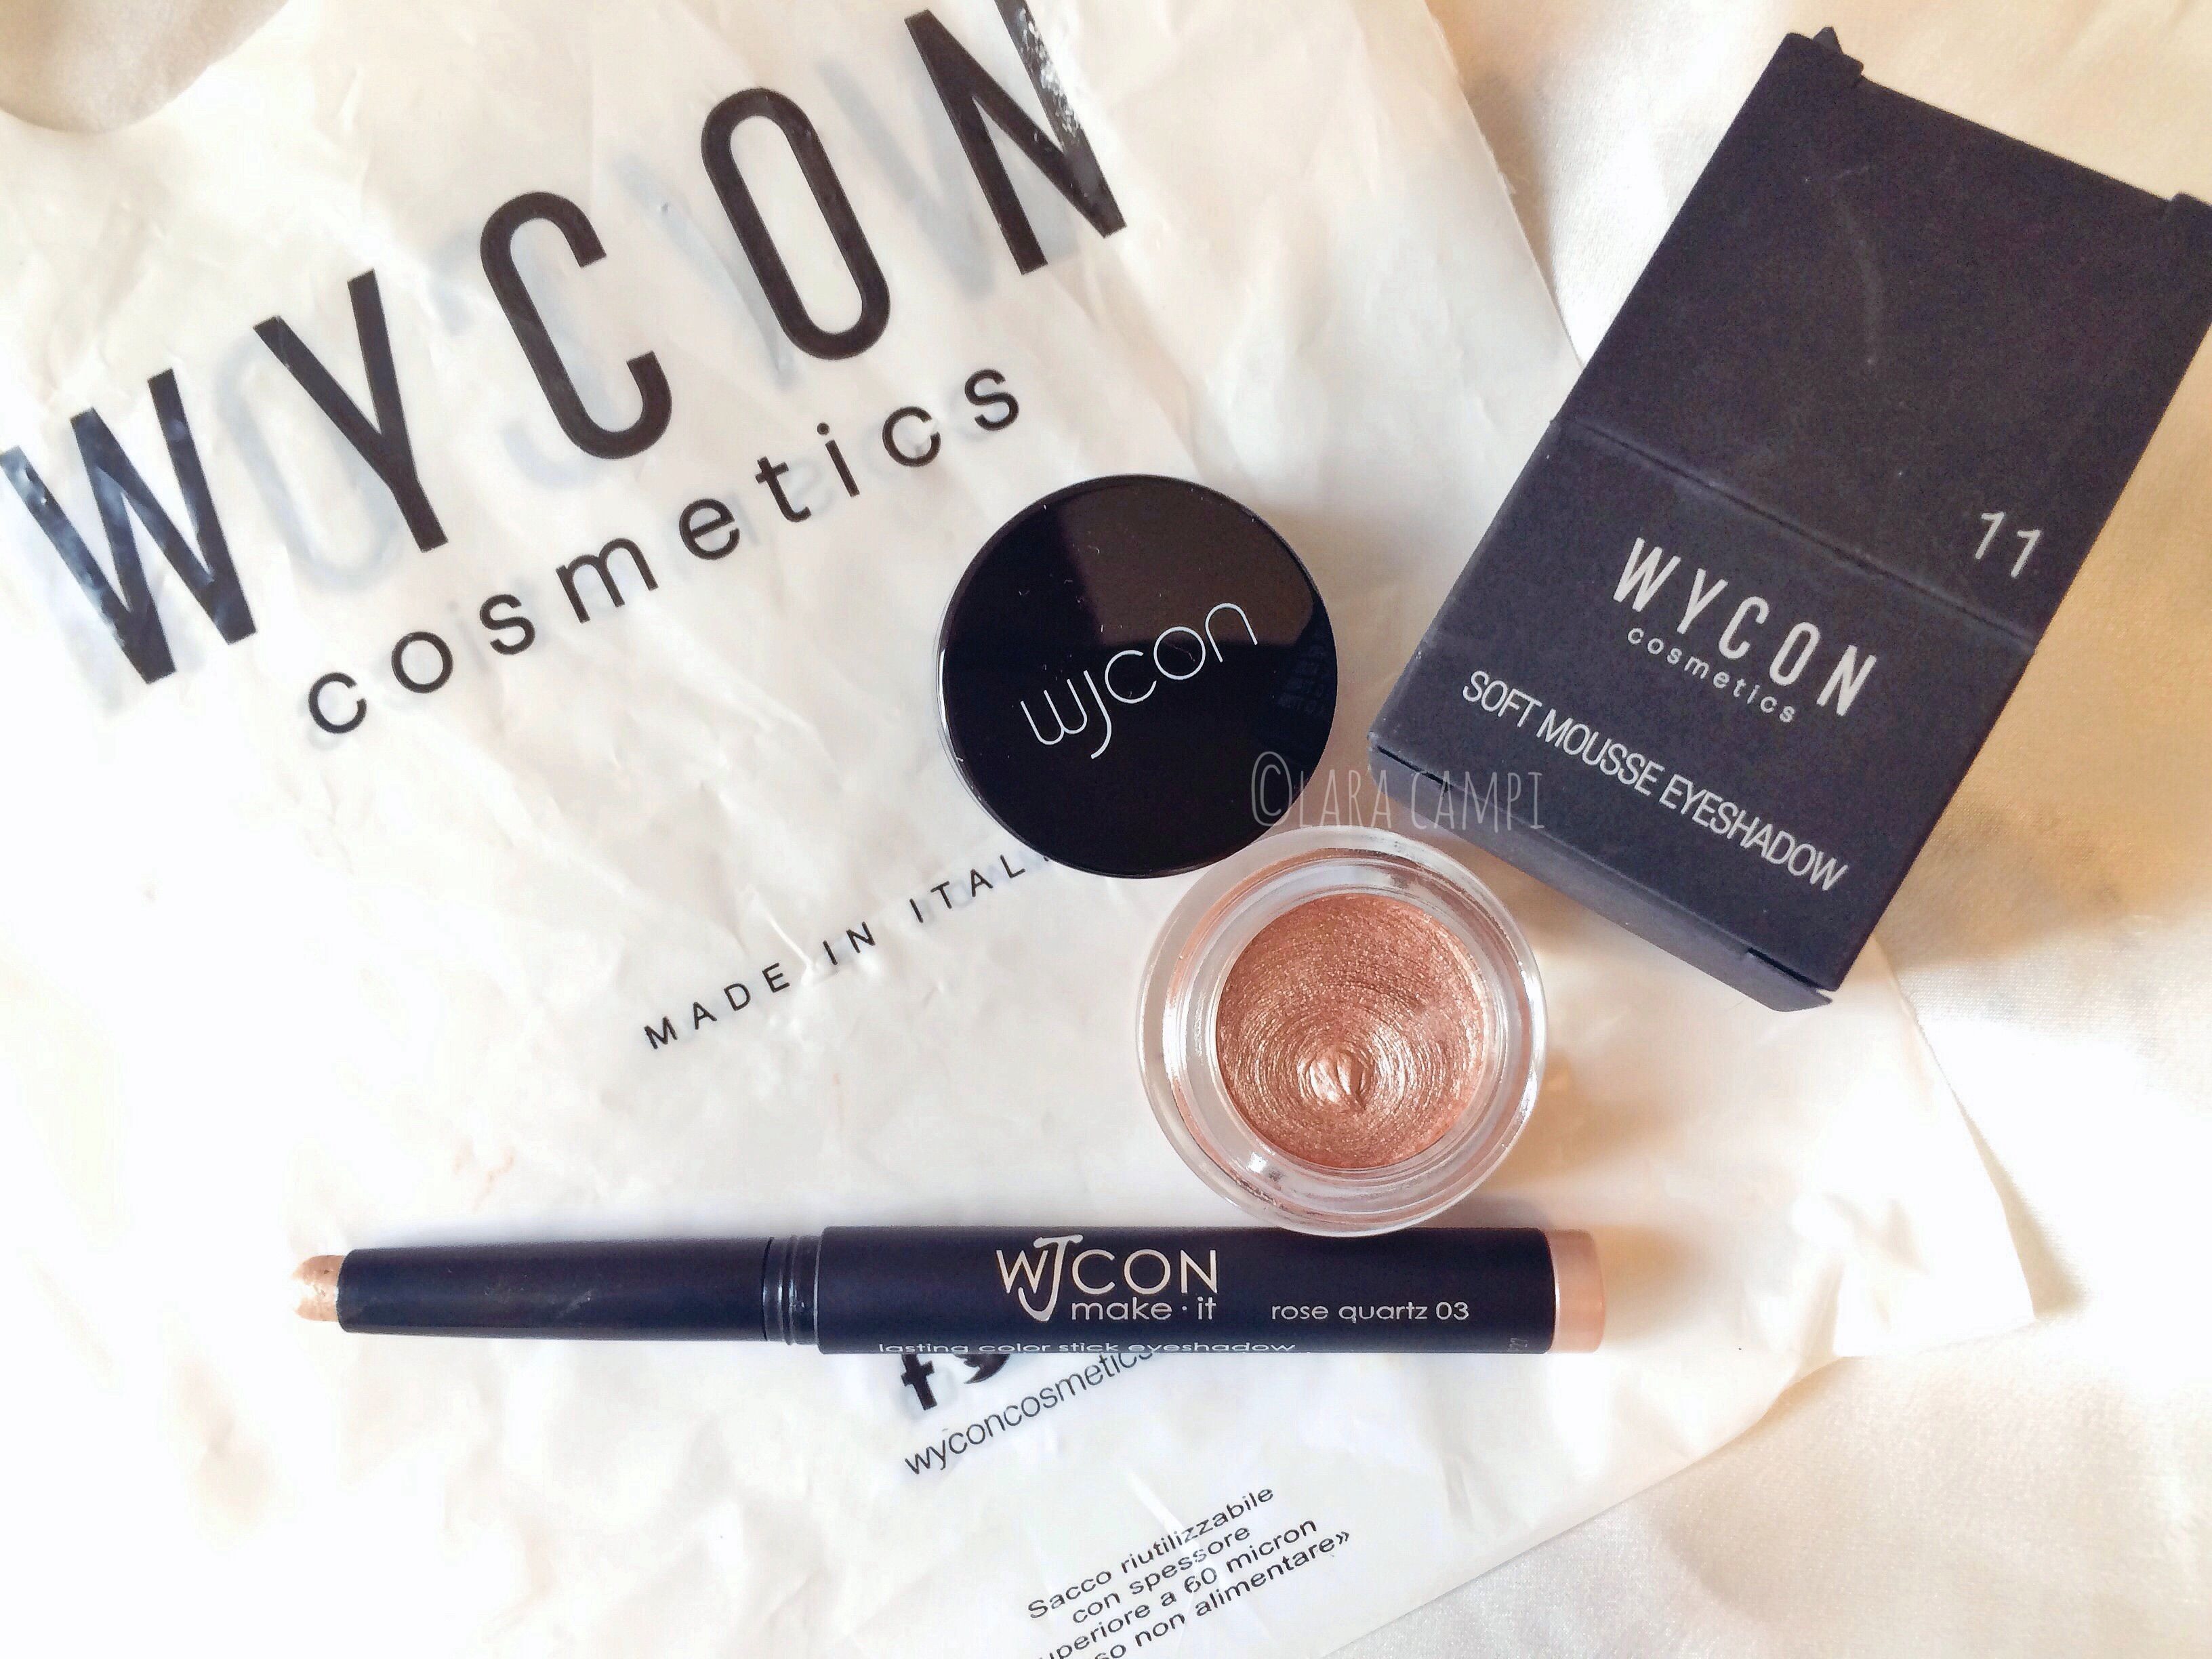 Wycon Cosmetics Italian Makeup Brands the Underdogs of